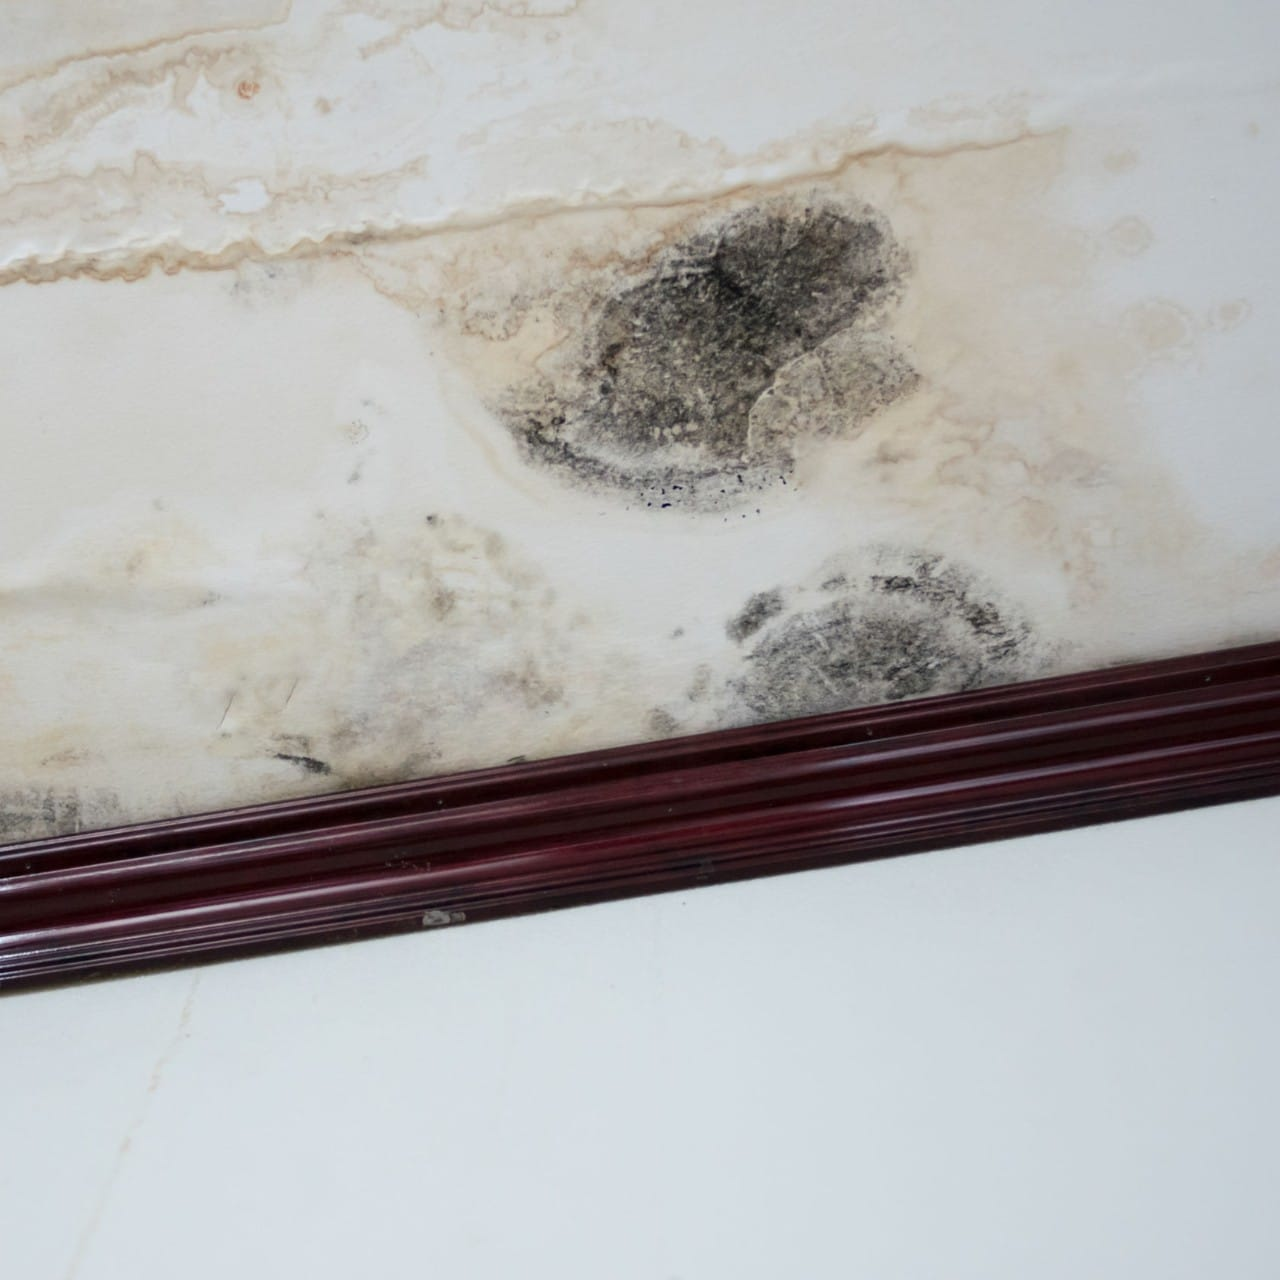 mold from leak on ceiling